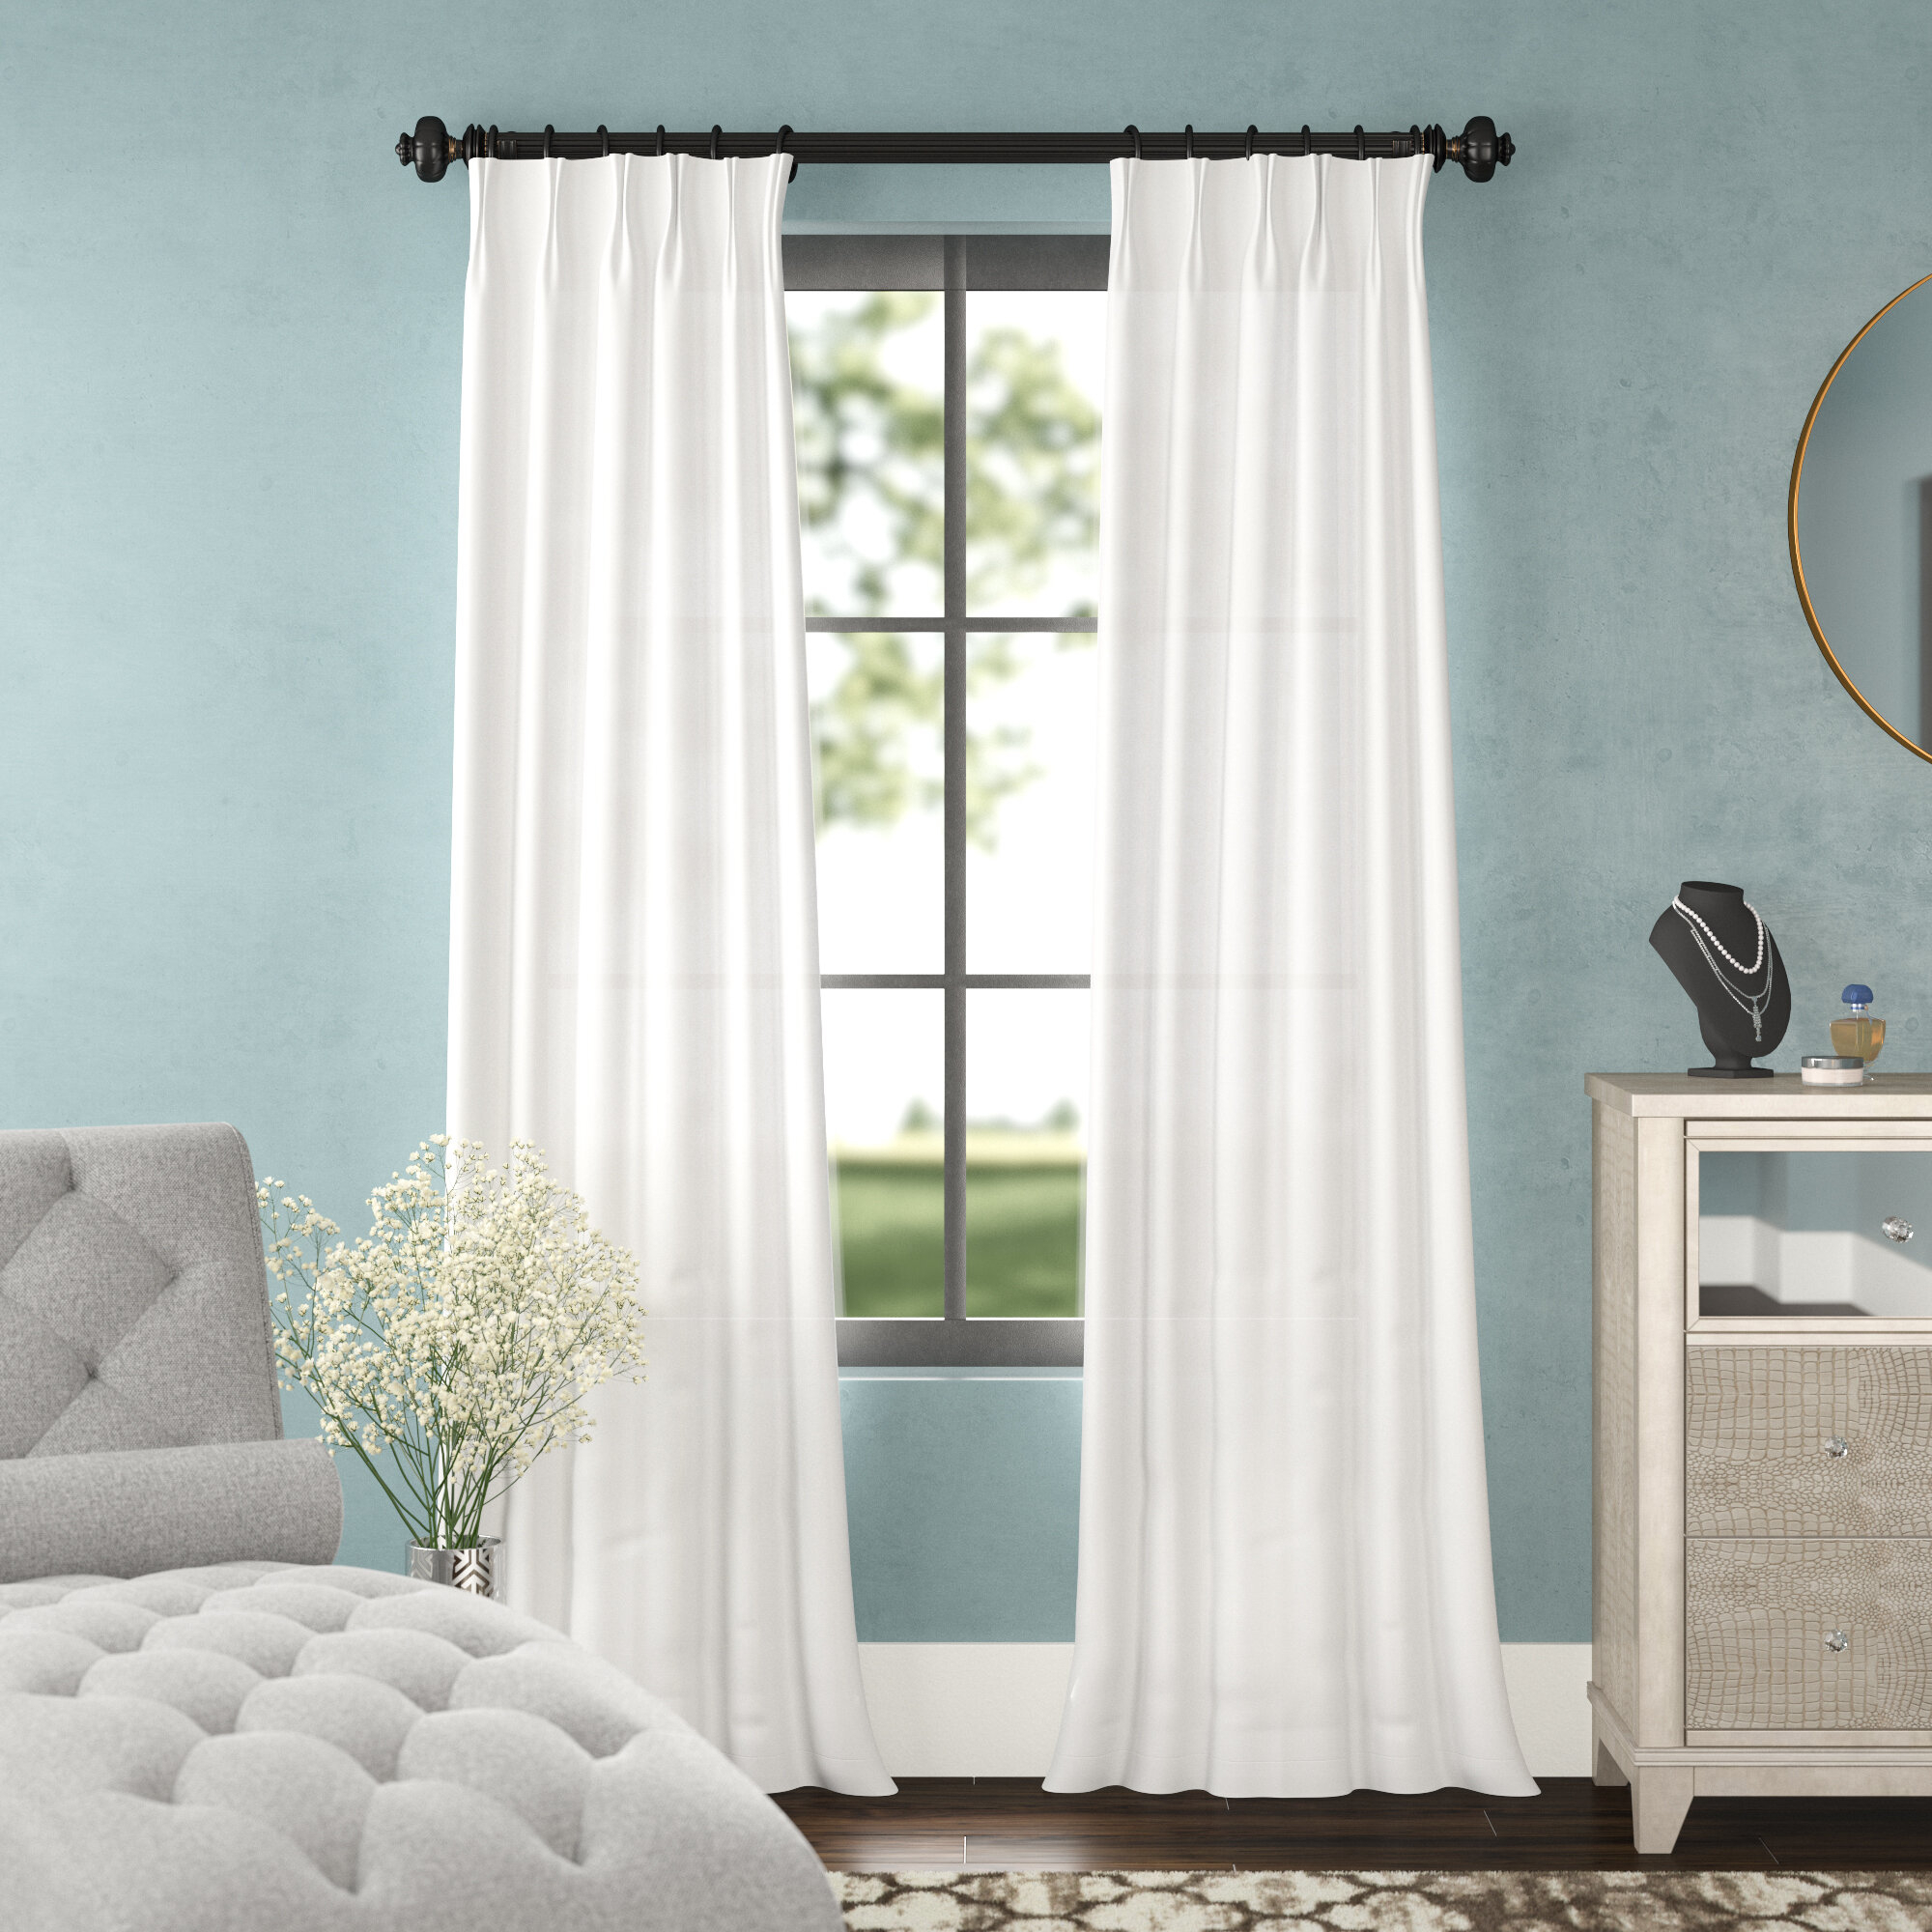 Forbell Solid Blackout Vintage Textured Faux Dupioni Thermal Pinch Pleat Single Curtain Panel Throughout Vintage Textured Faux Dupioni Silk Curtain Panels (View 7 of 30)